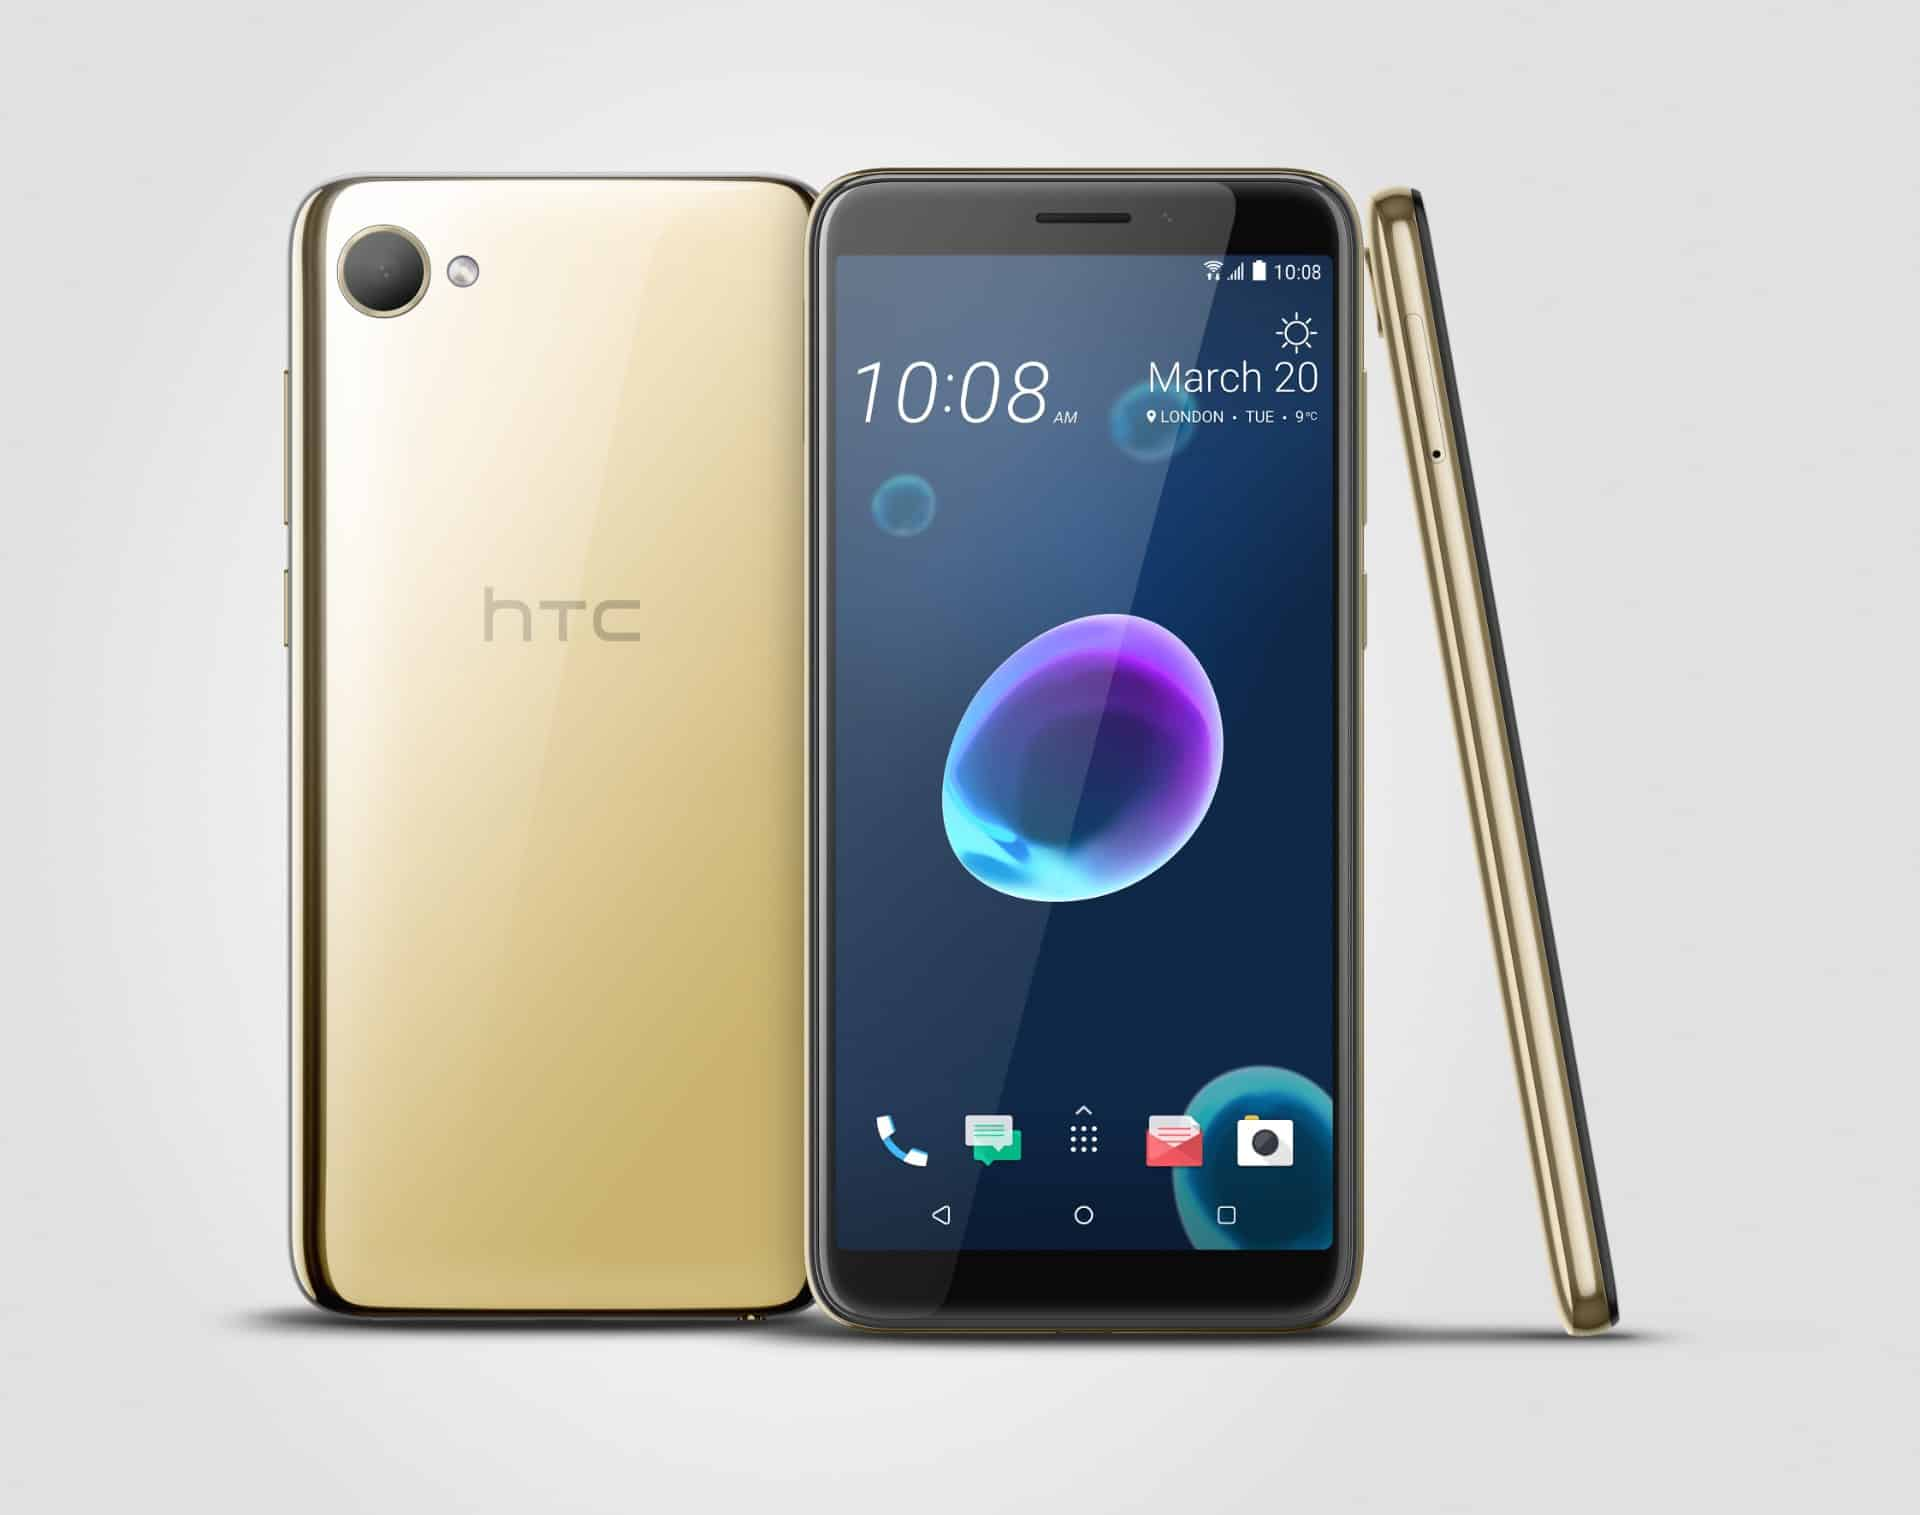 HTC's Desire 12 phones are pretty, but unremarkable